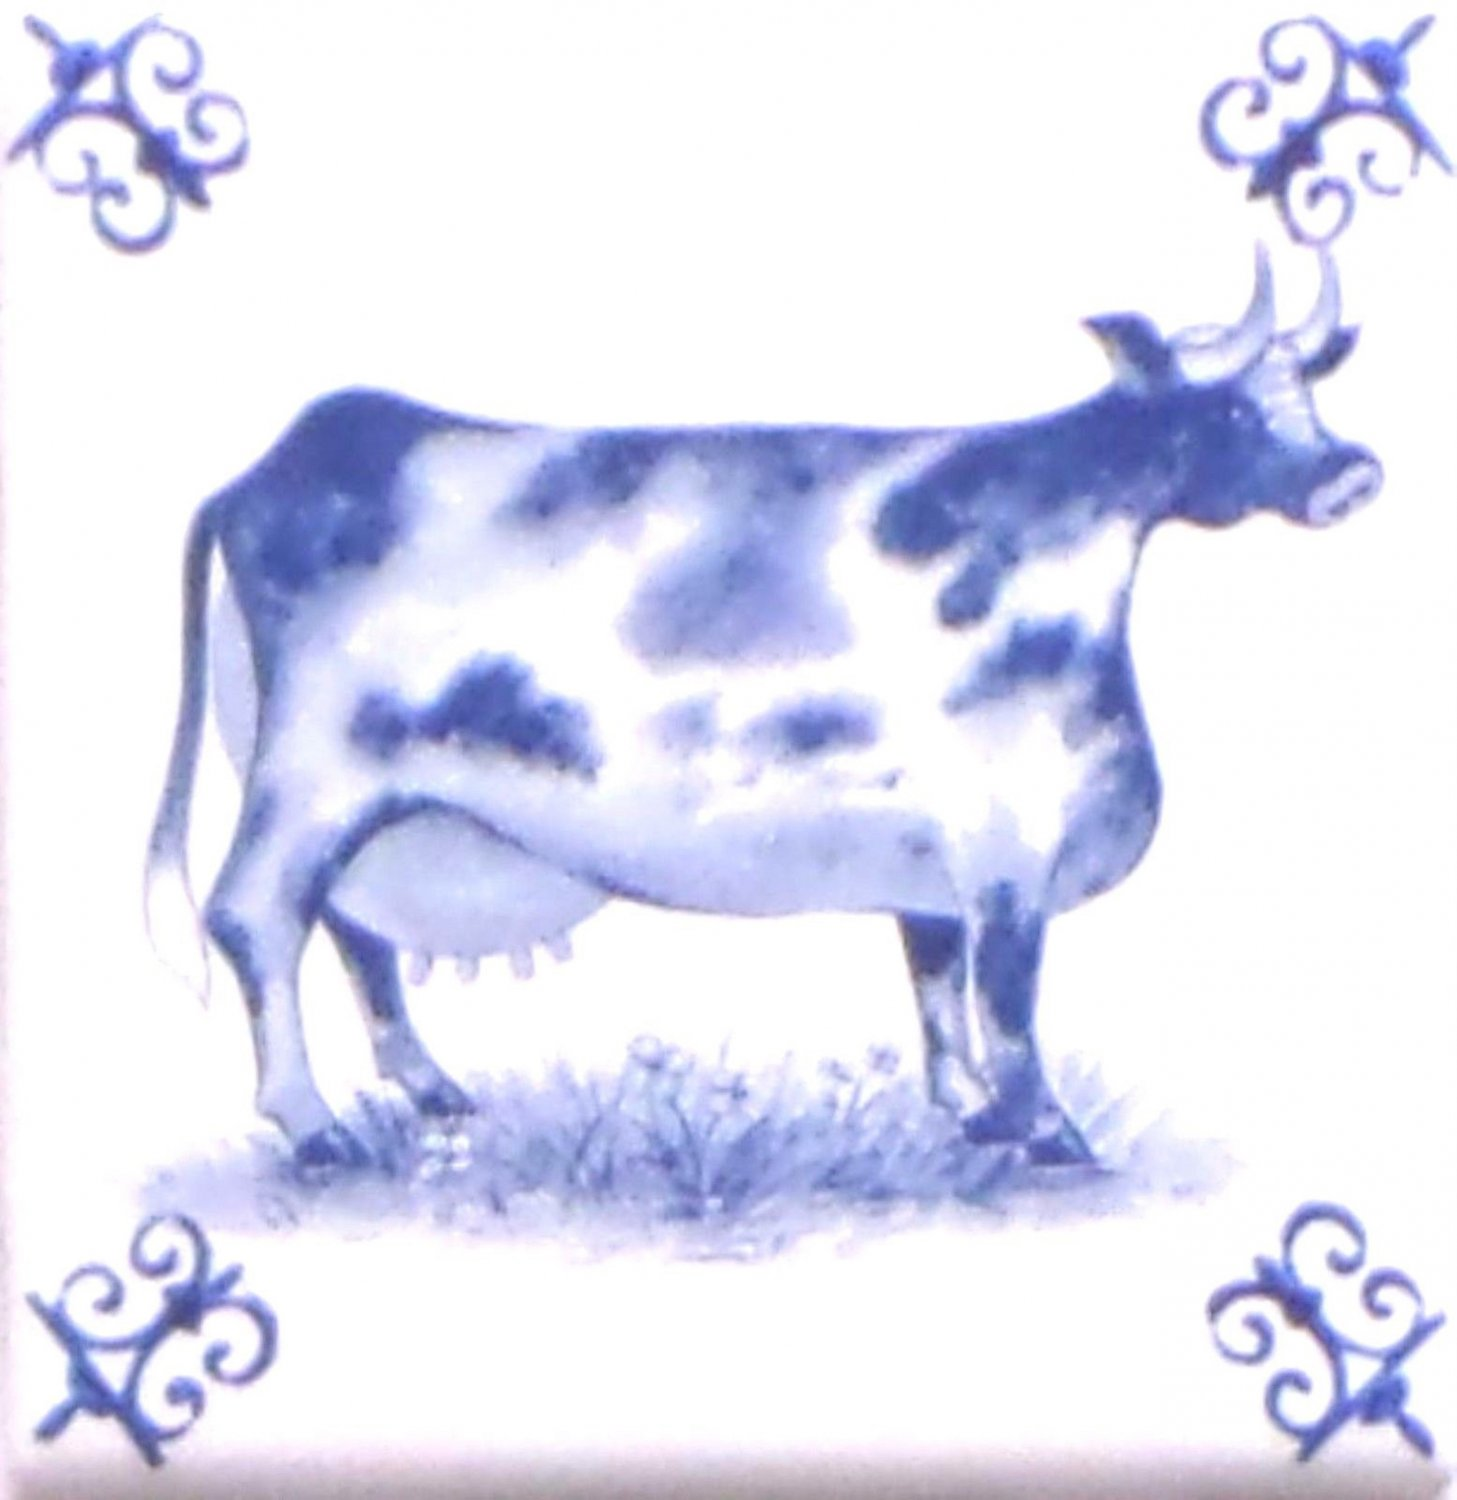 Blue Cow Ox Tail Ceramic Tile Accent Kiln Fired Back Splash Delft 4.25""